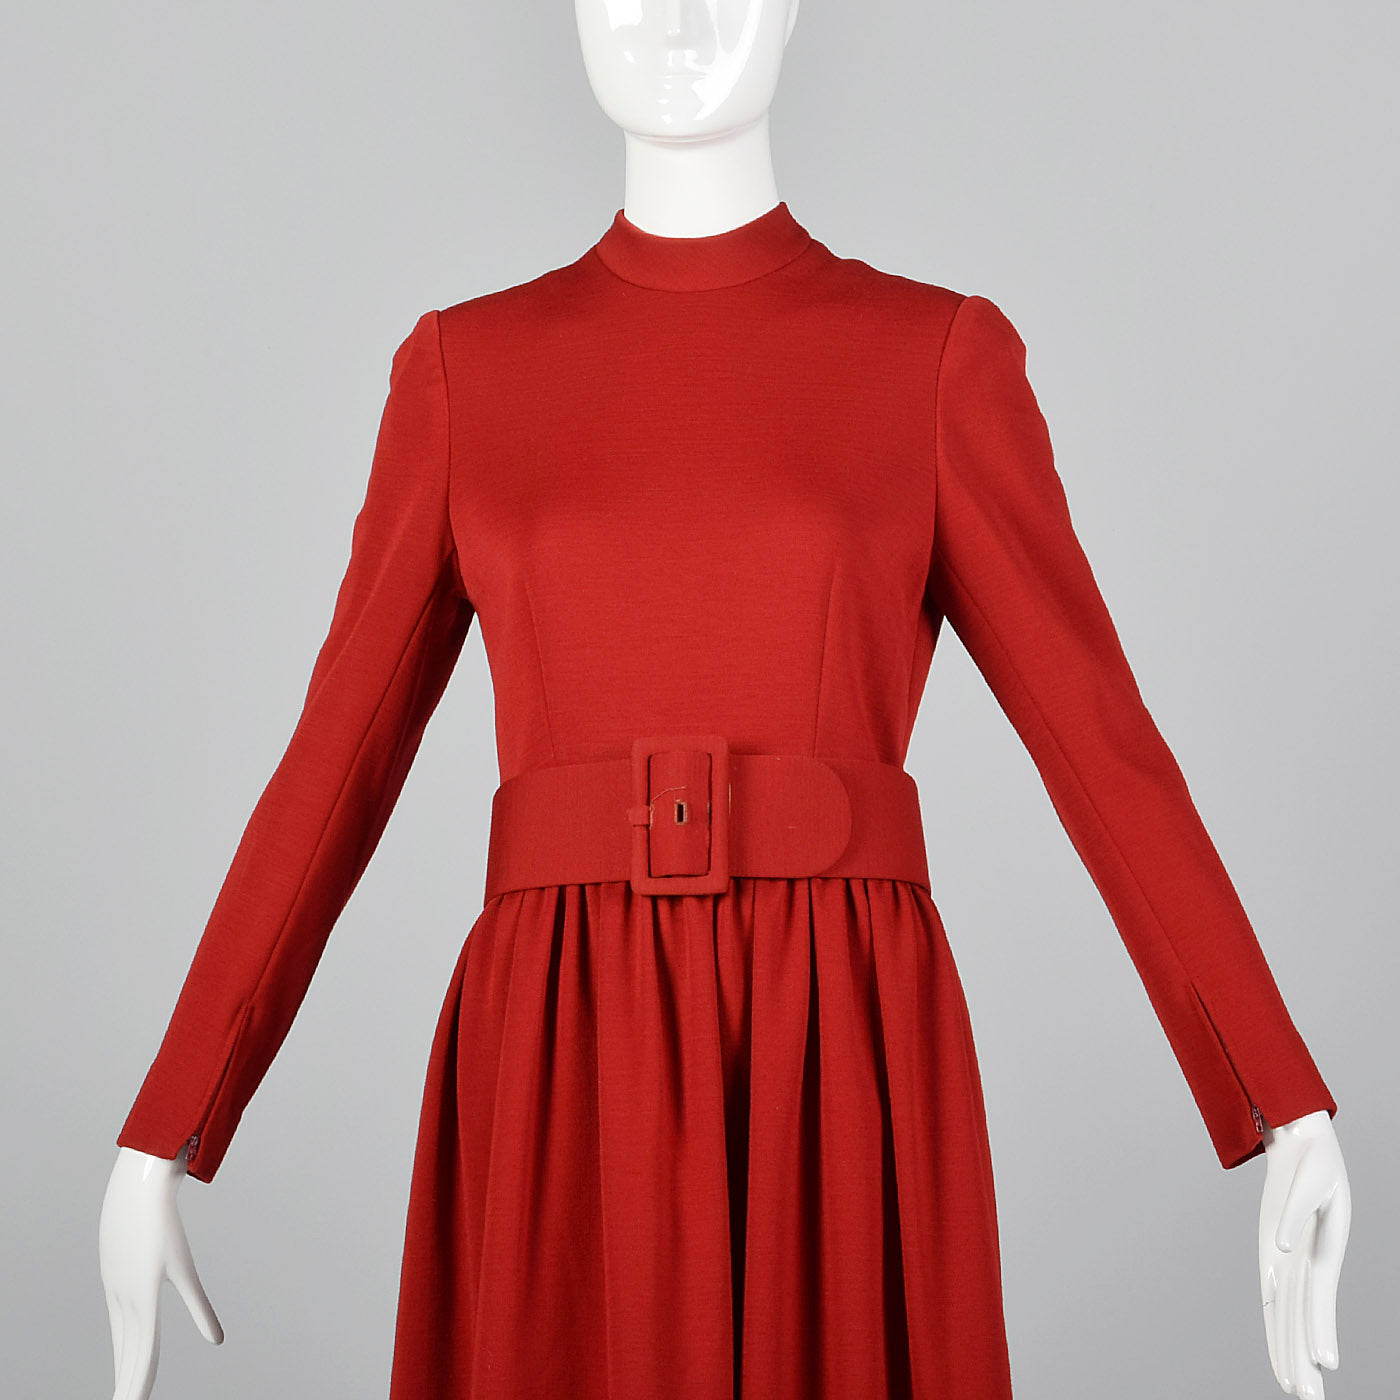 1960s Normal Norell Mod Red Fit & Flare Dress with Wide Belt